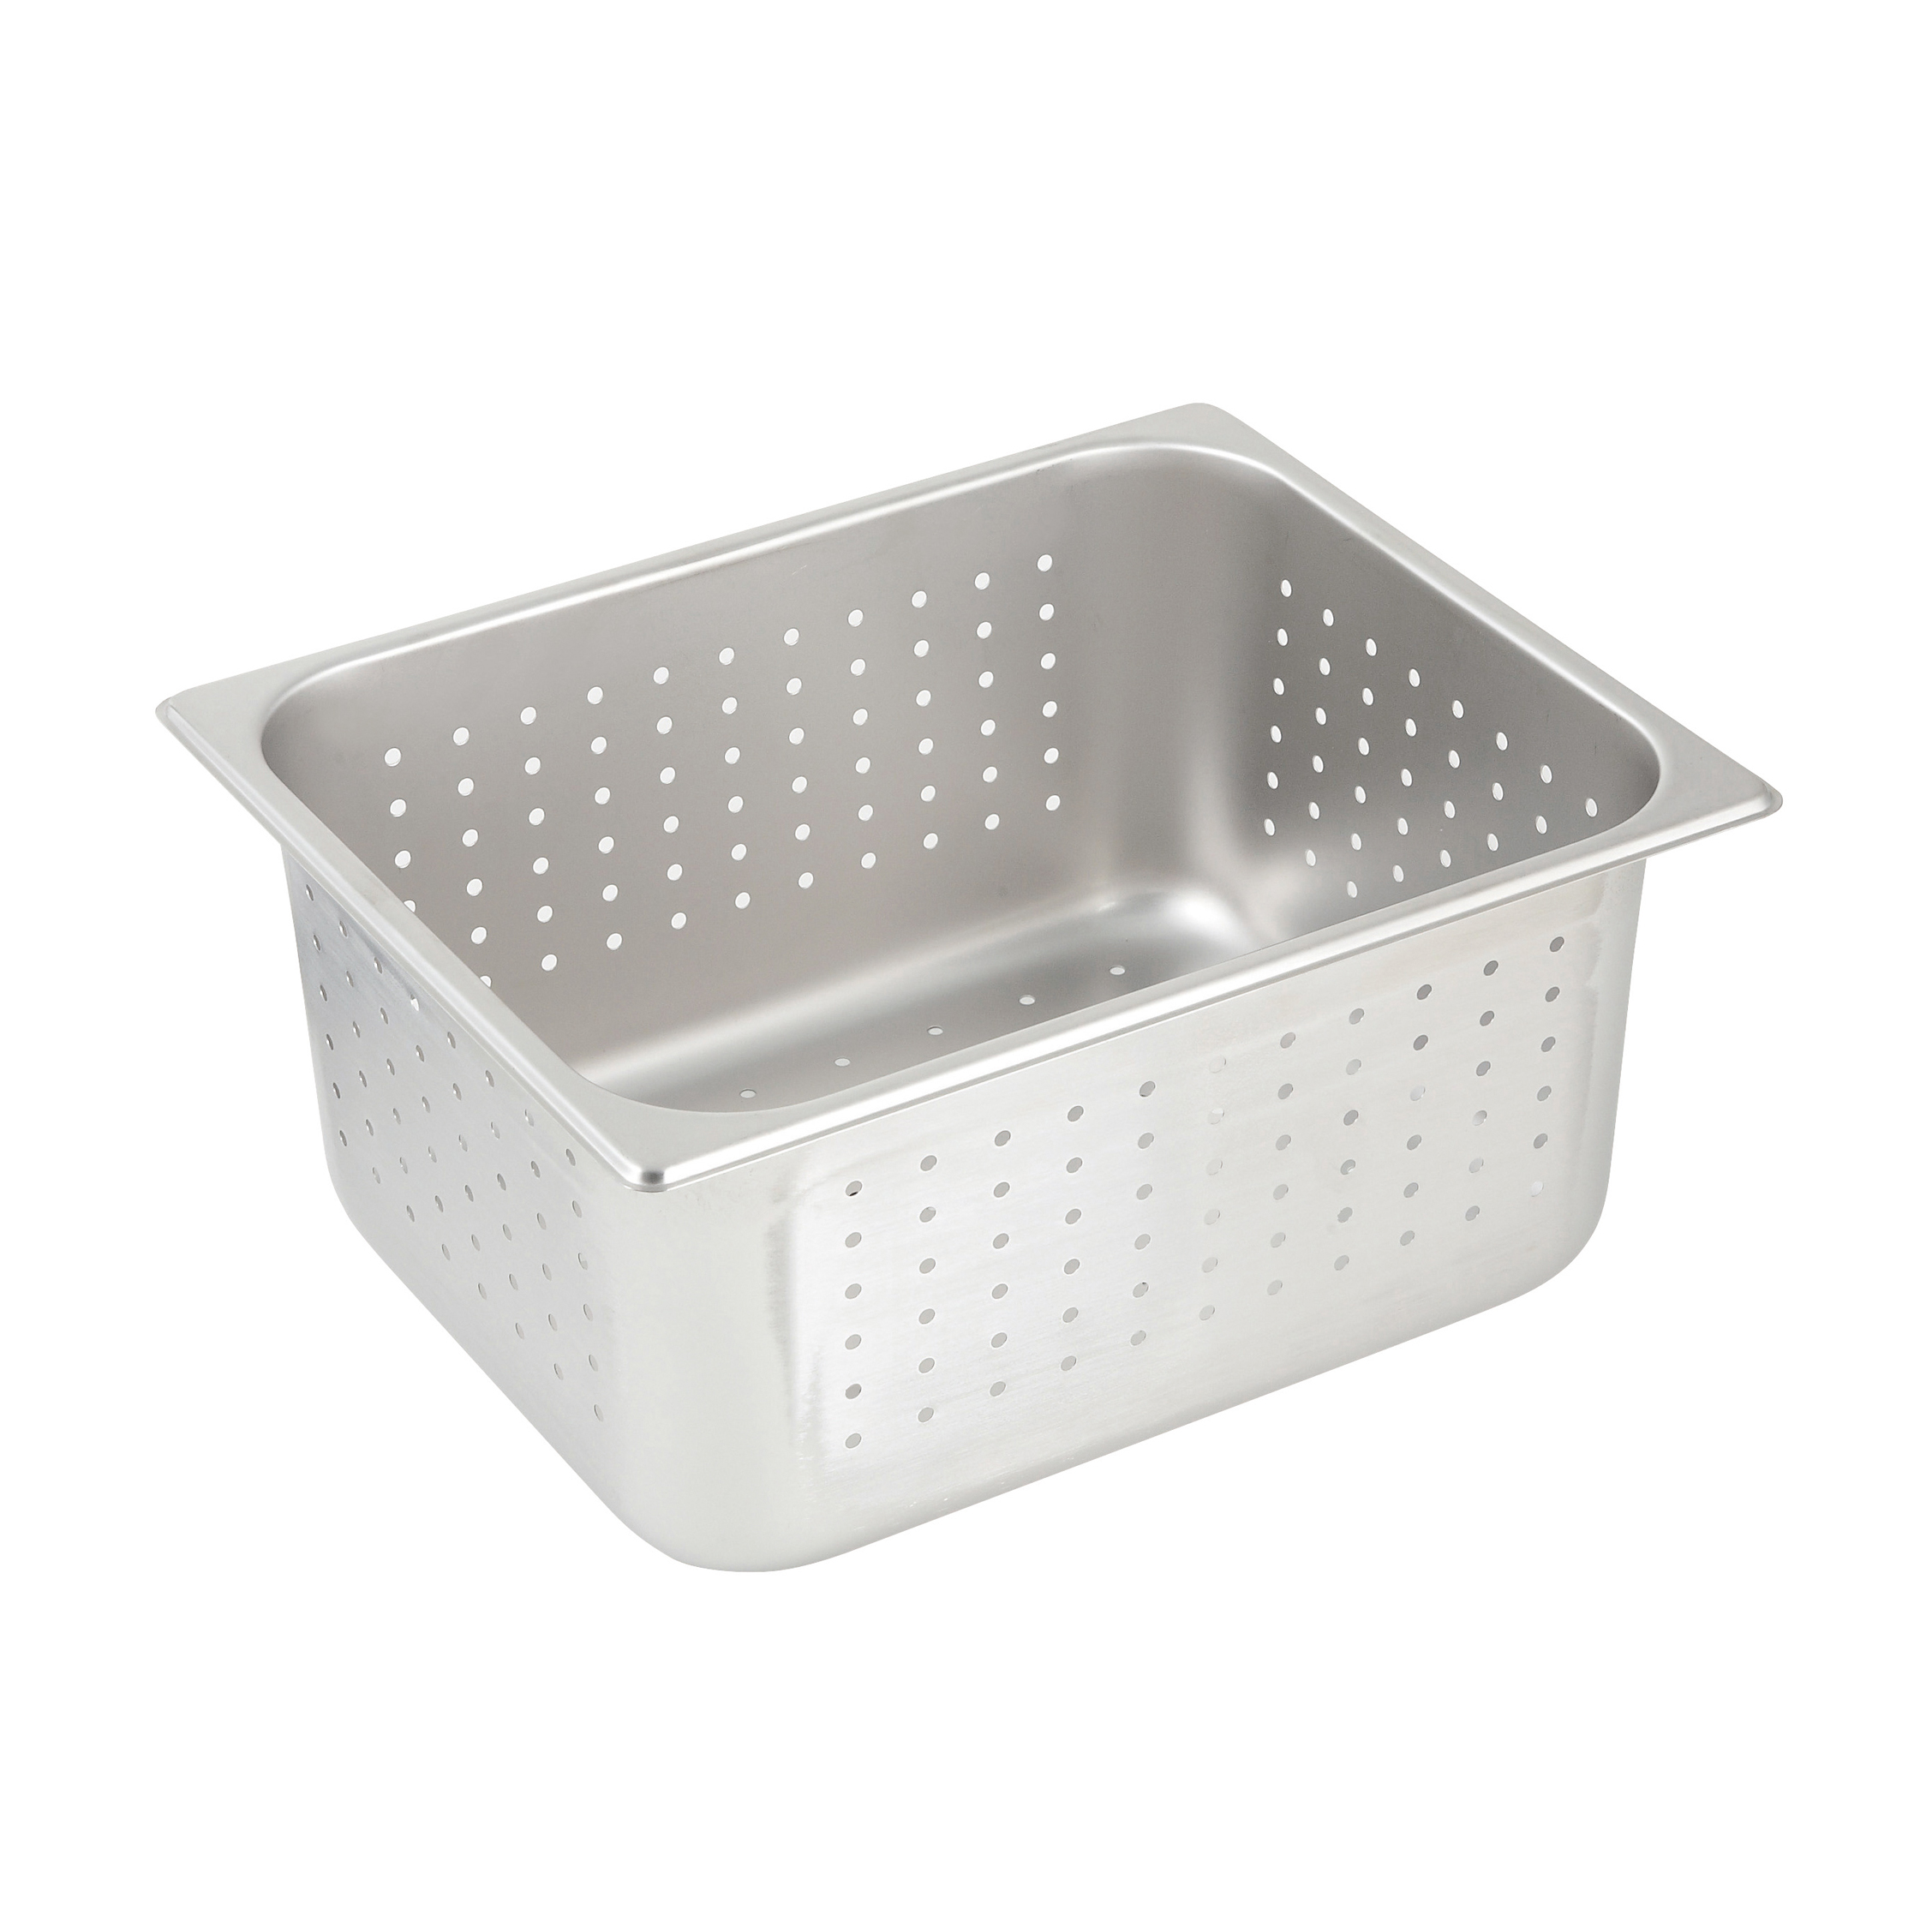 Winco SPJH-206PF steam table pan, stainless steel